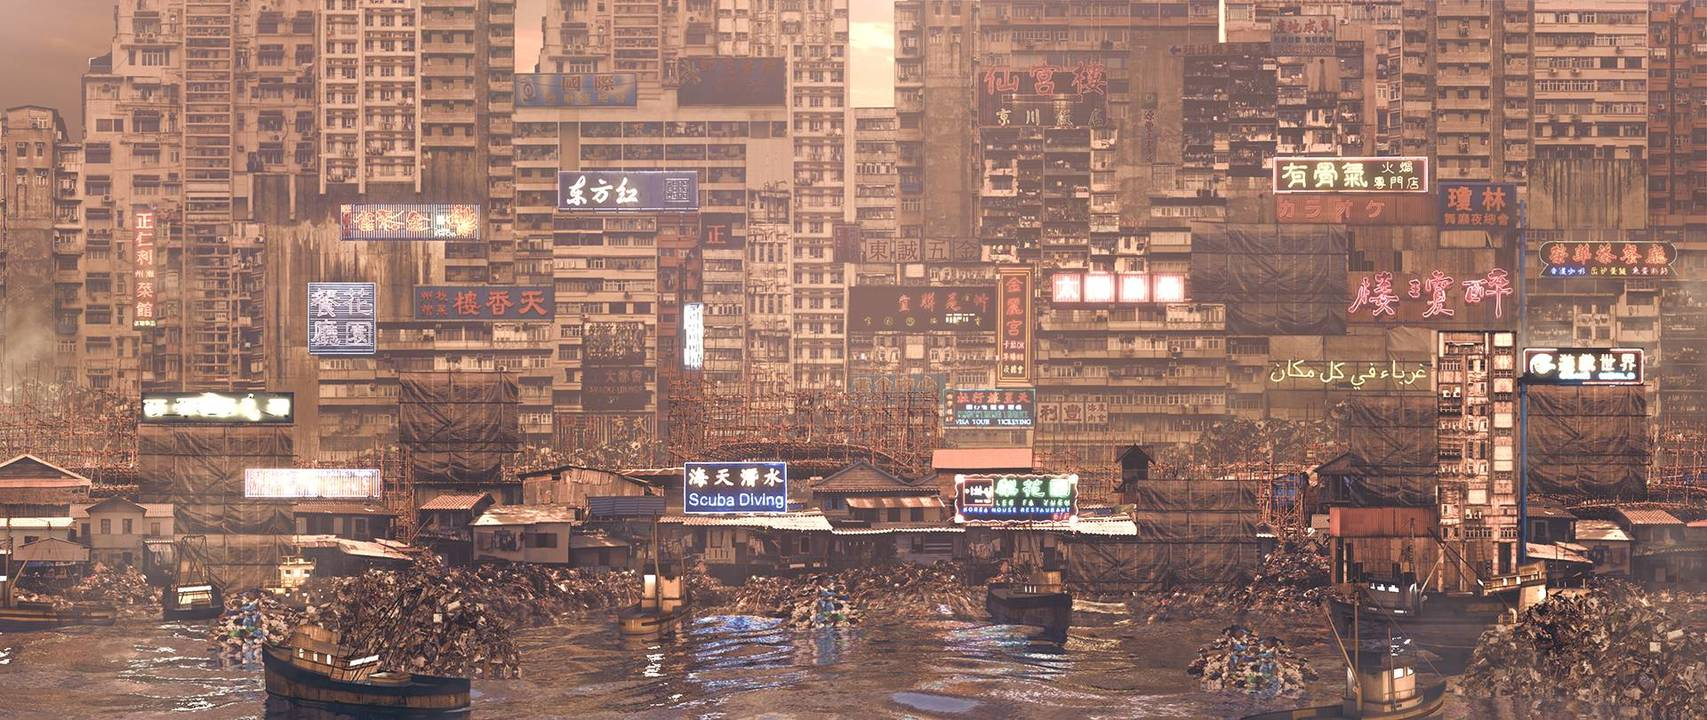 70.1-the city in the sea_Liam Young_low res